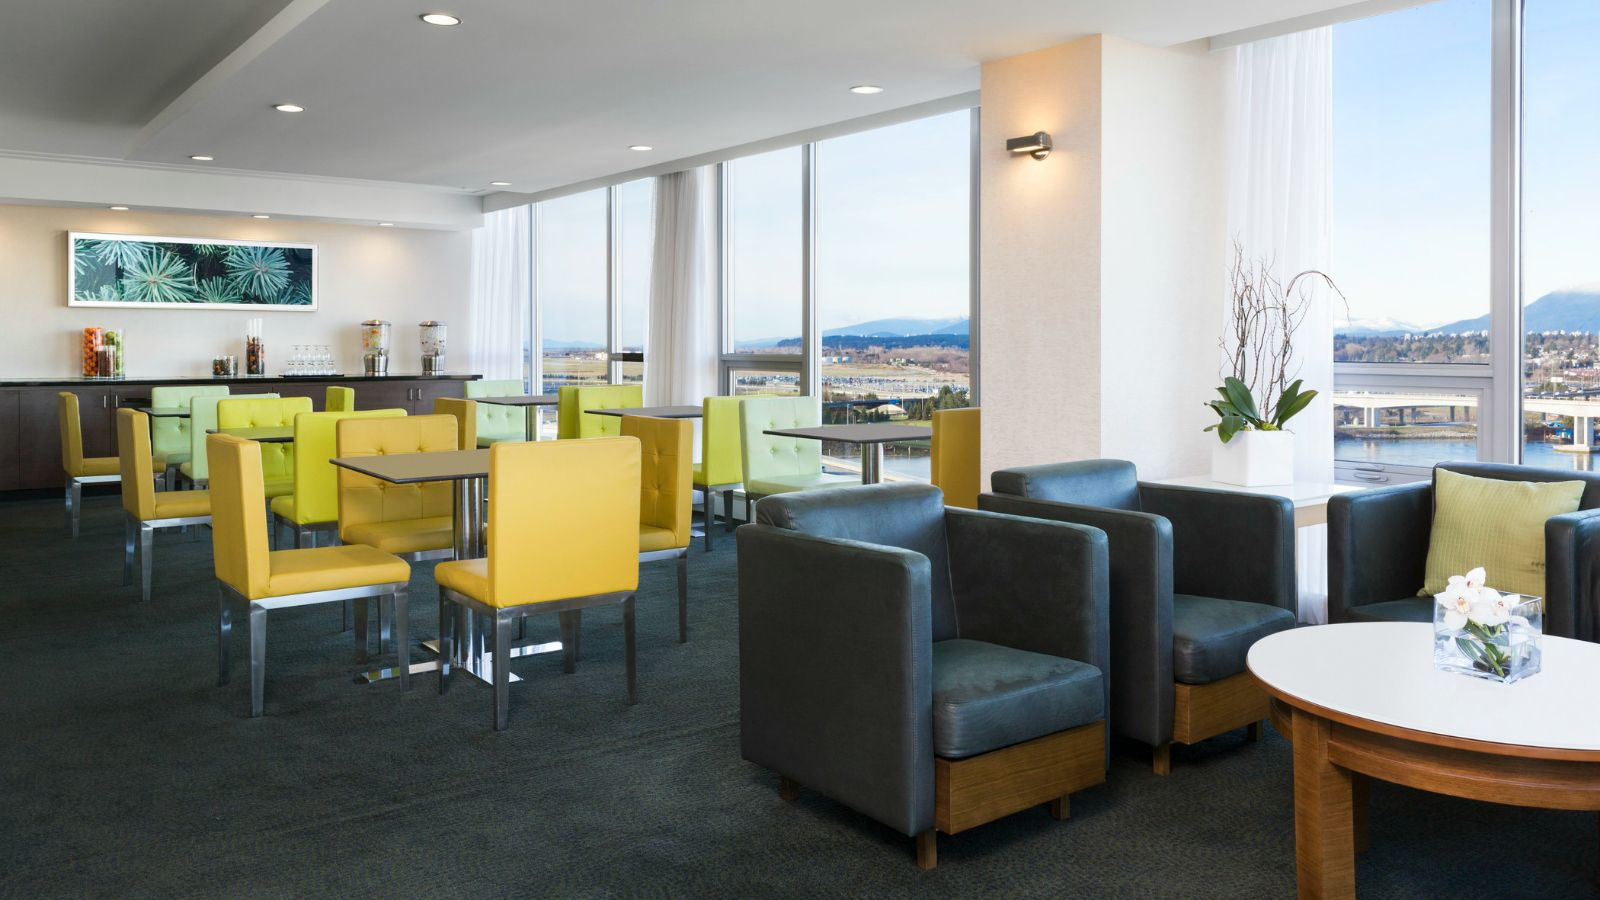 Vancouver Airport Hotel Amenities - Executive Club Lounge